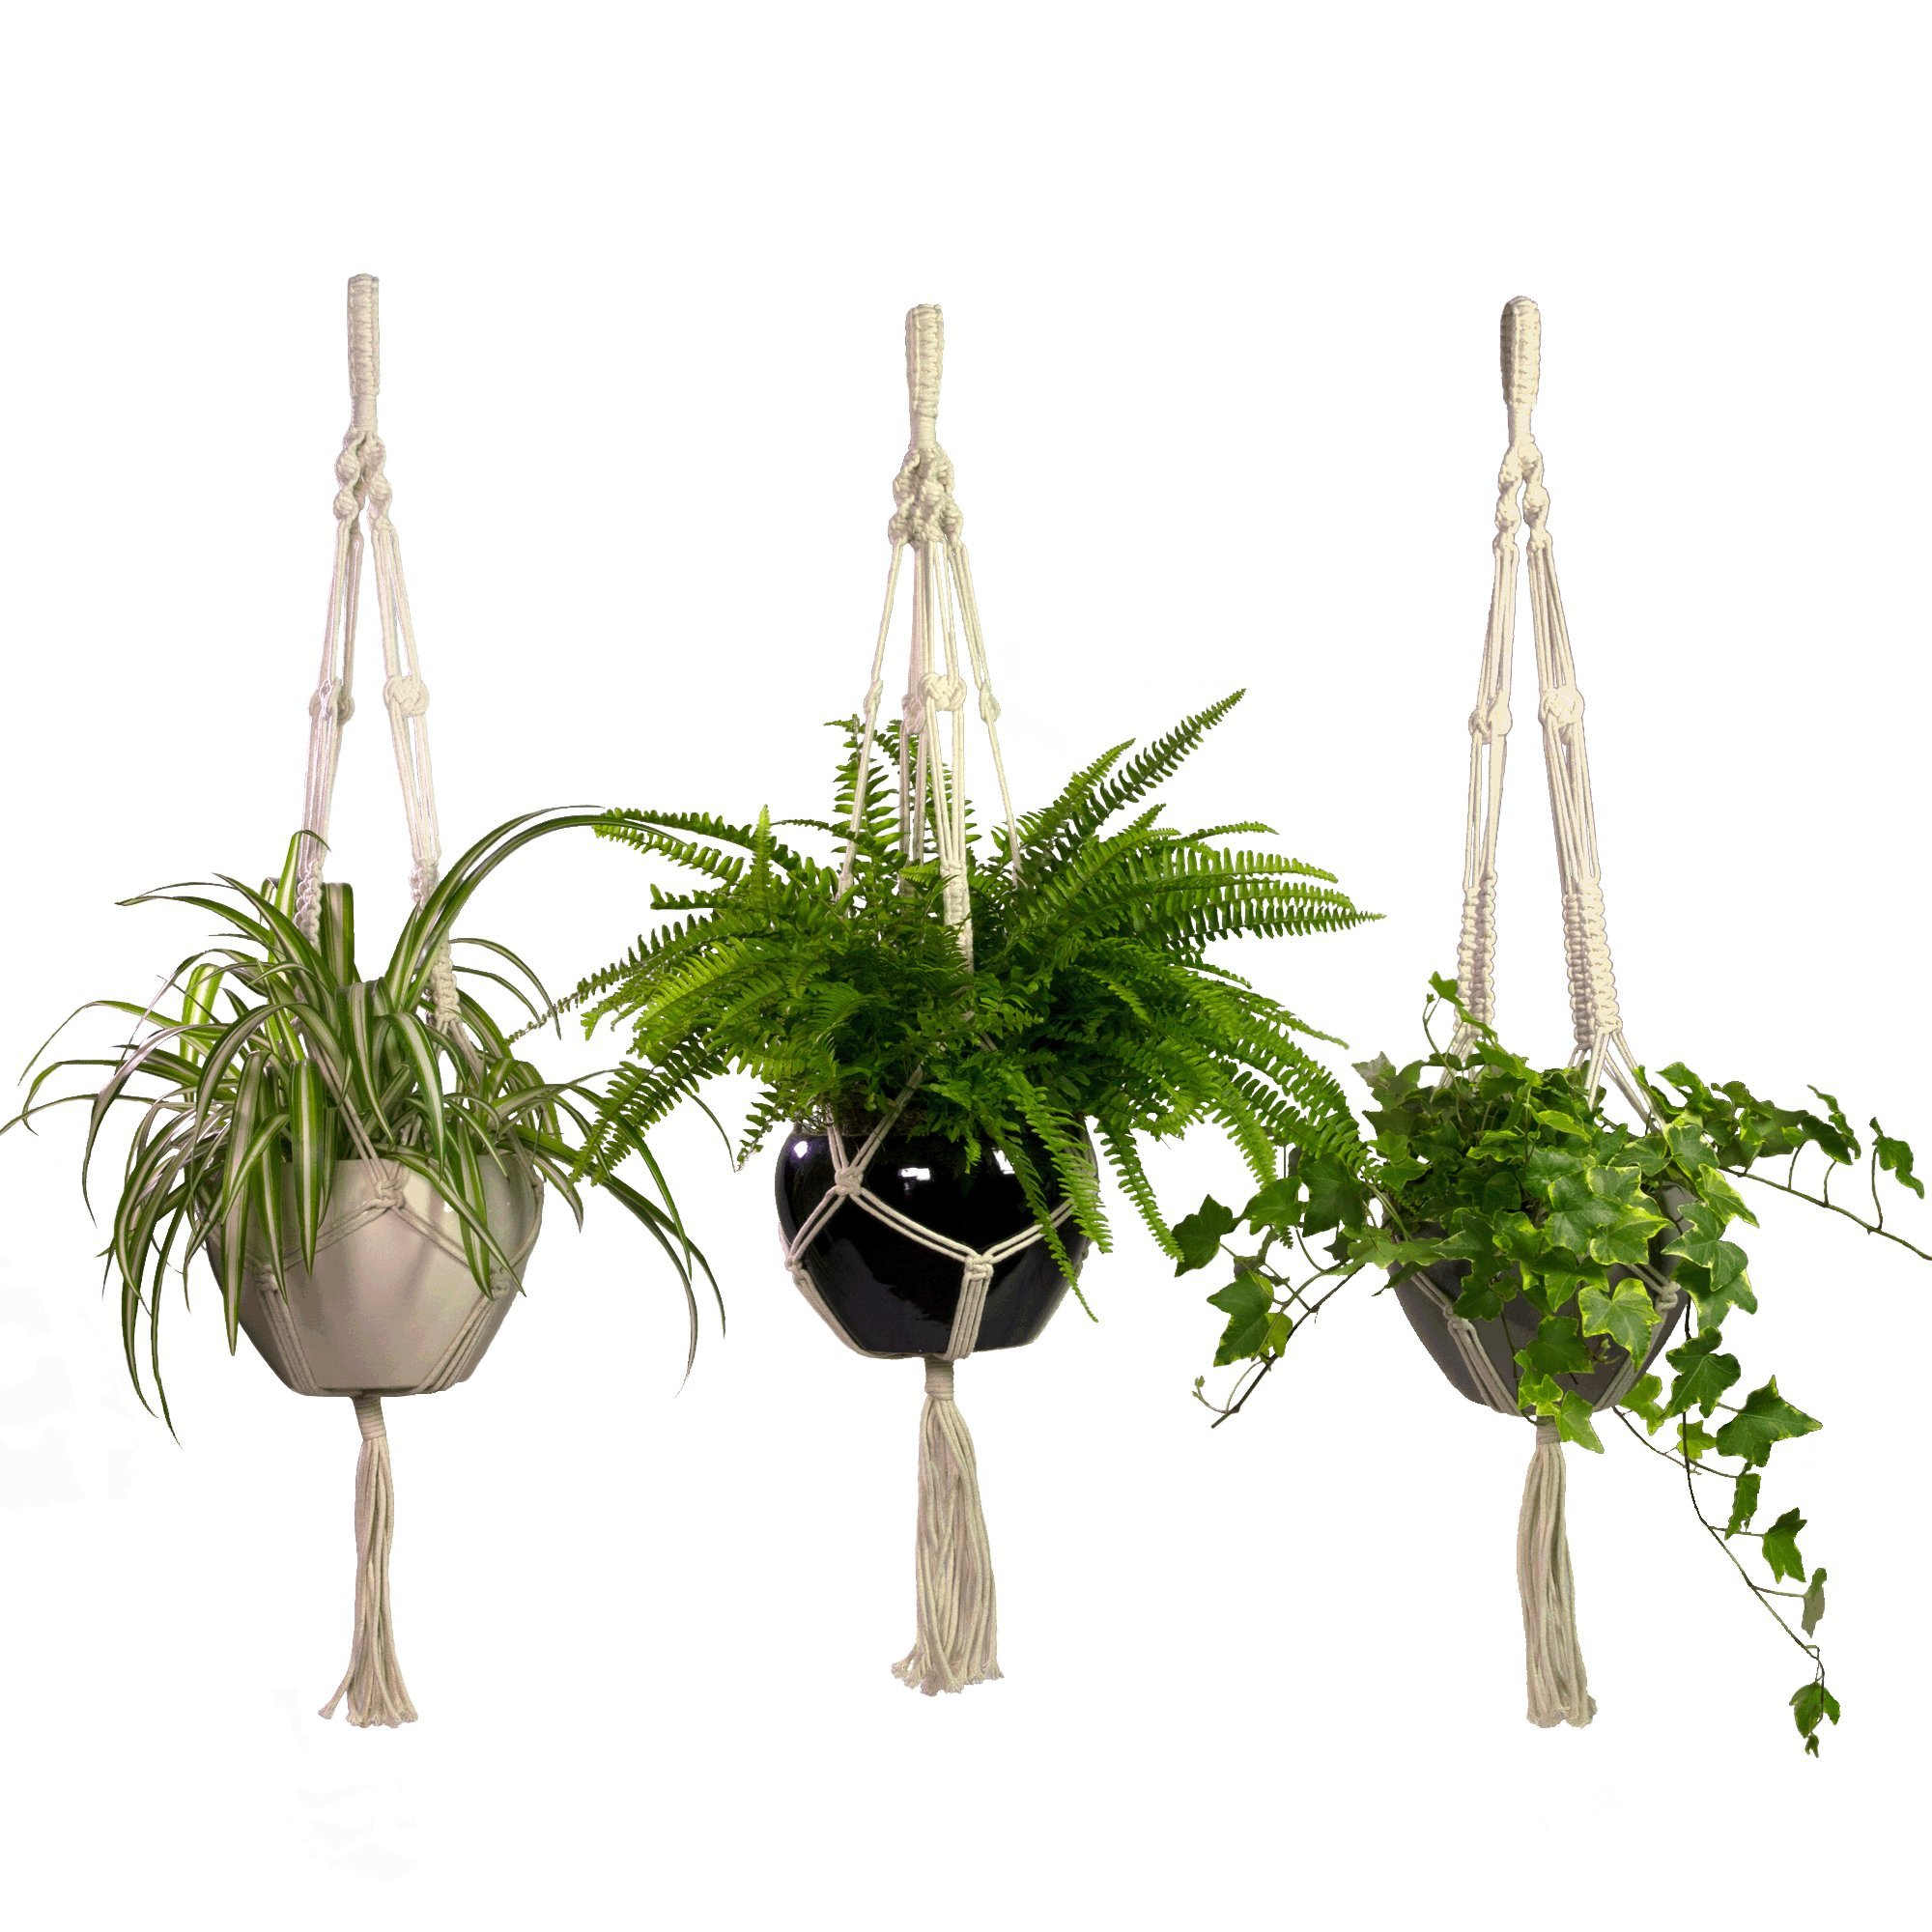 Macrame Plant Hangers 3 Pack Set Large Outdoor Indoor Planter Holders- Handmade Natural Cotton Rope for Decorative Balcony, Garden, Patio by CesuraPro- 2 Years Warranty